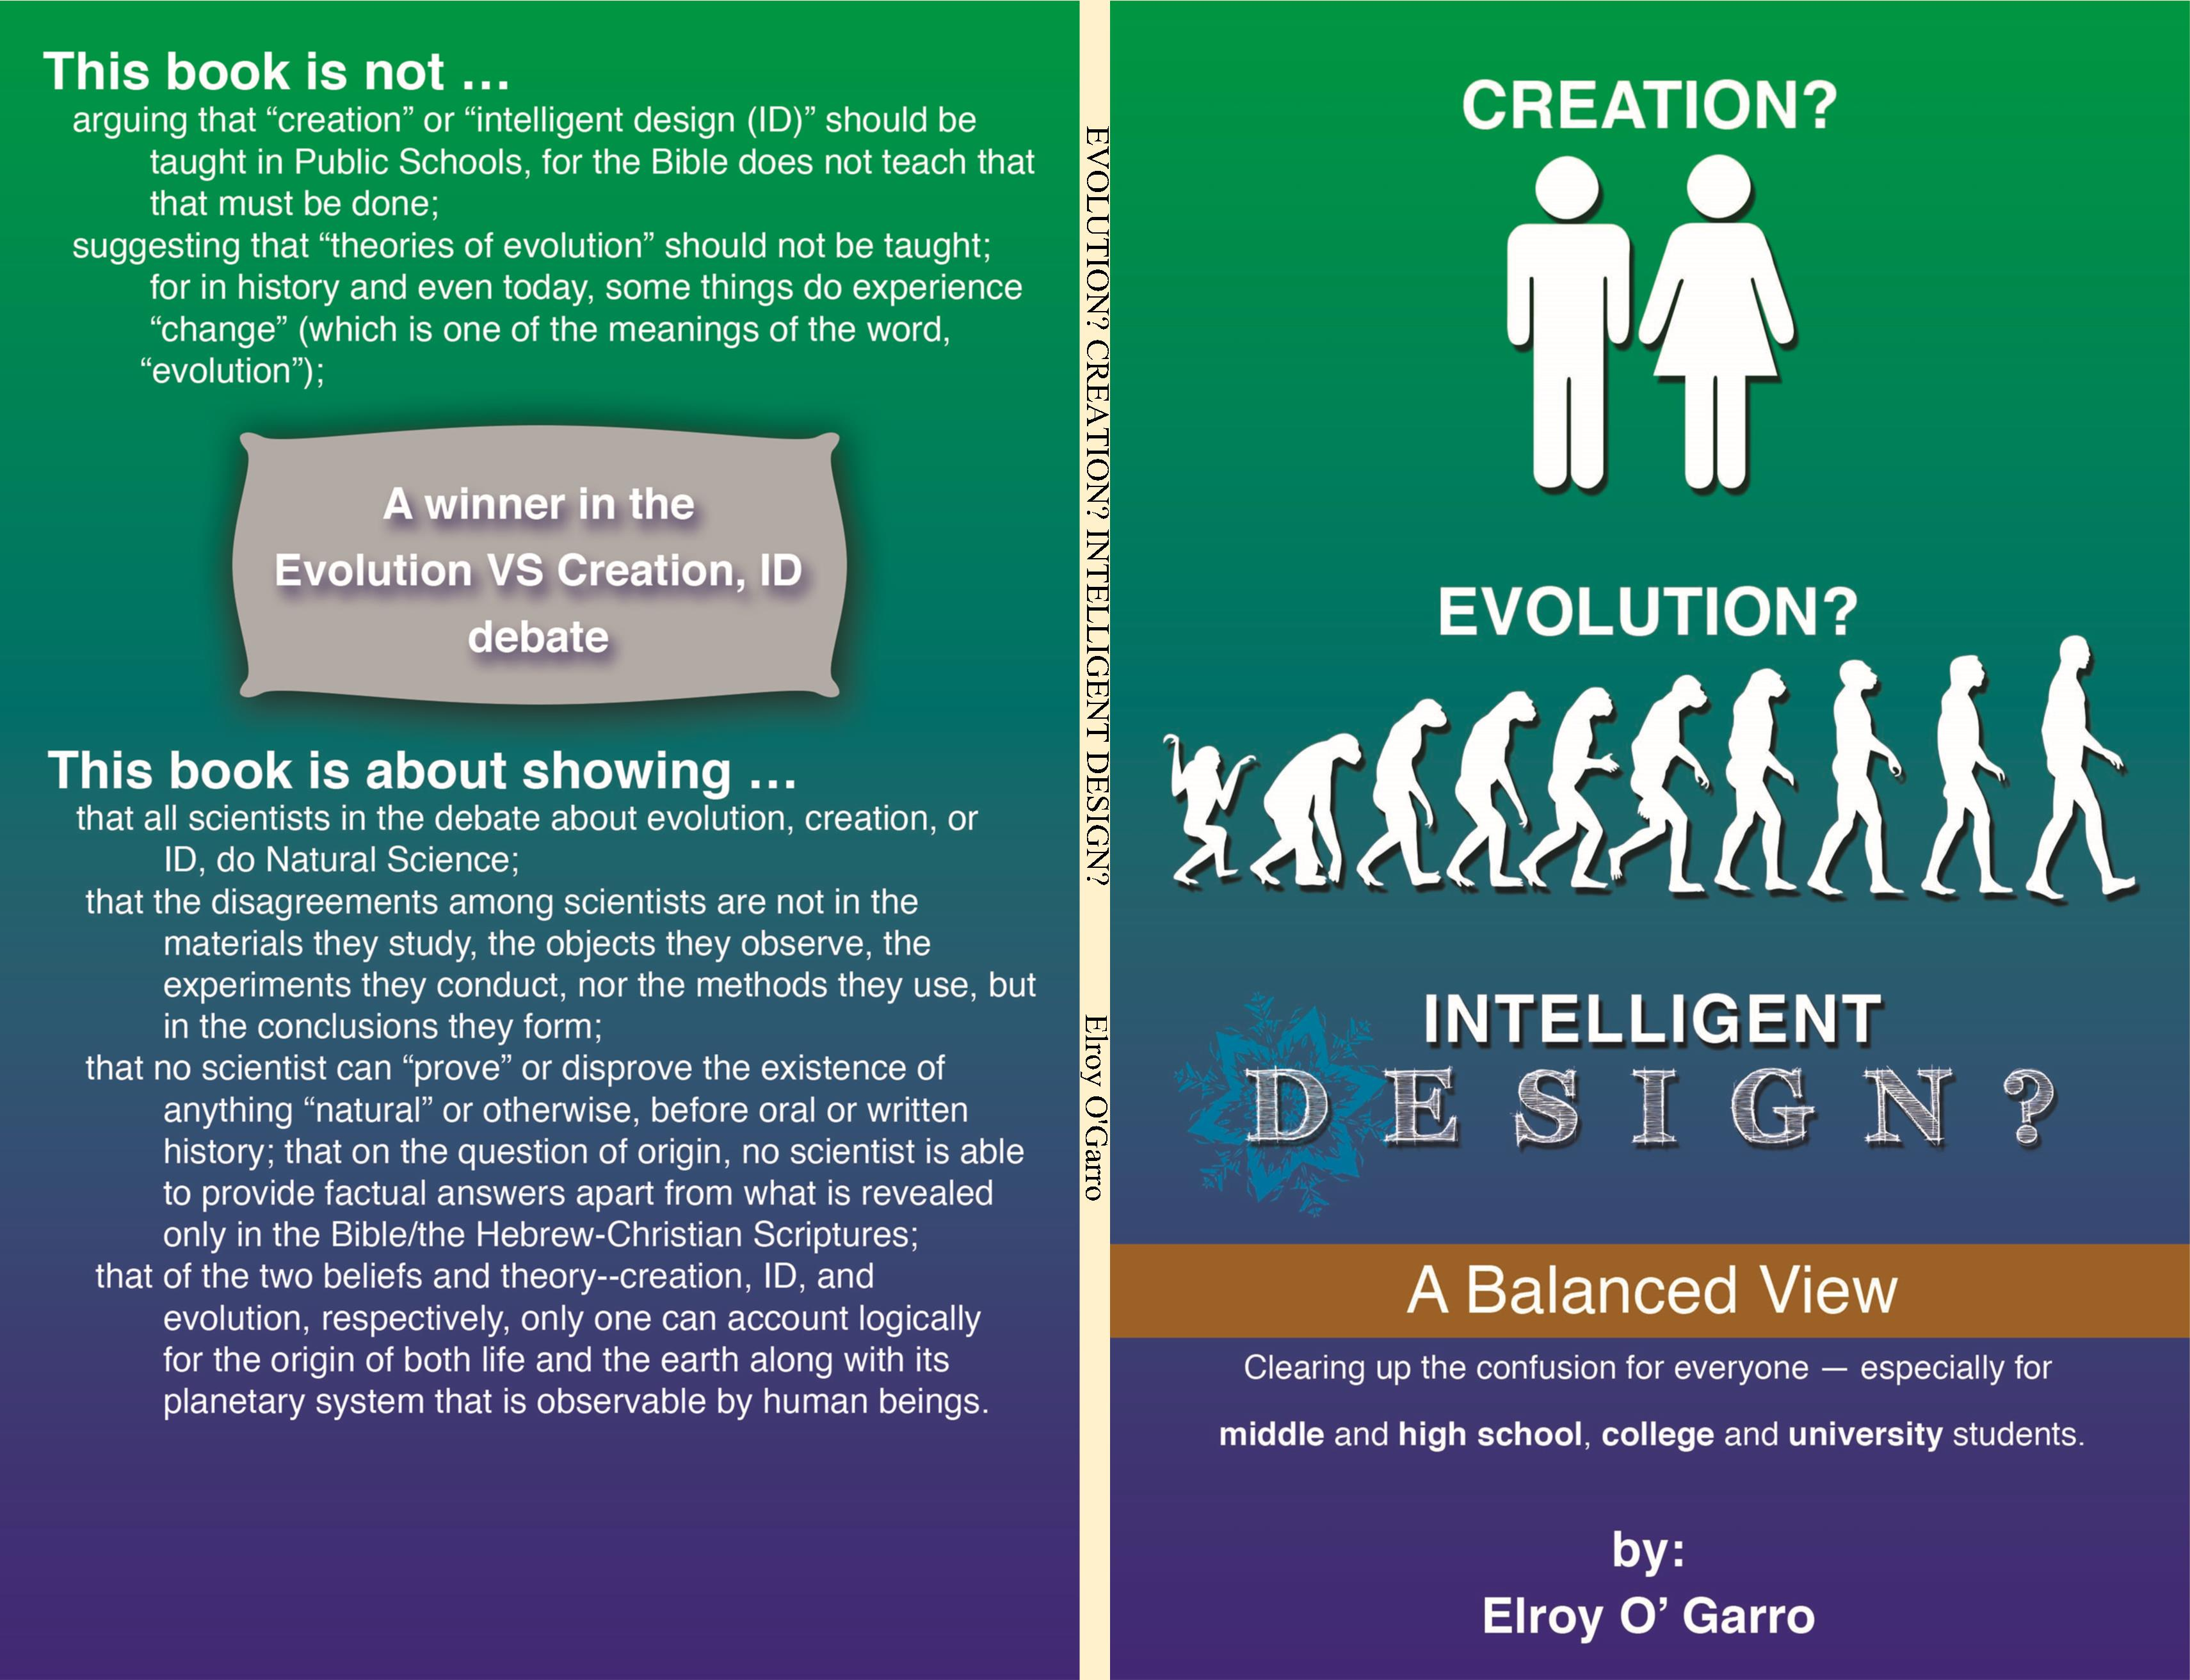 evolution and intelligent design Creationist richard b bliss used the phrase creative design in origins: two models: evolution, creation (1976), and in origins: creation or evolution (1988) wrote that while evolutionists are trying to find non-intelligent ways for life to occur, the creationist insists that an intelligent design must have been there in the first place.